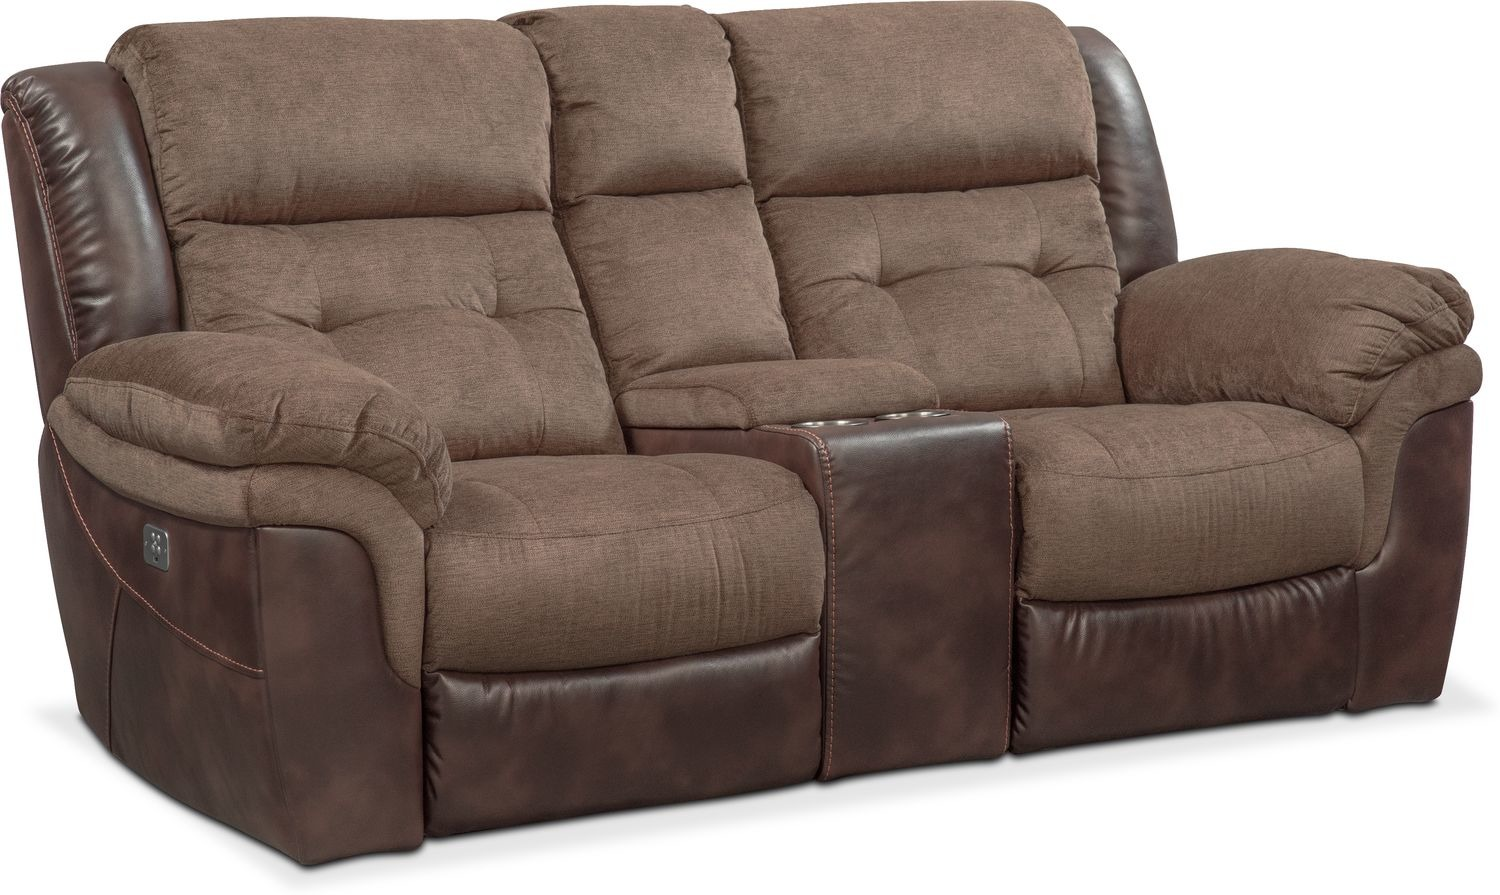 Living Room Furniture - Tacoma Dual Power Reclining Loveseat with Console